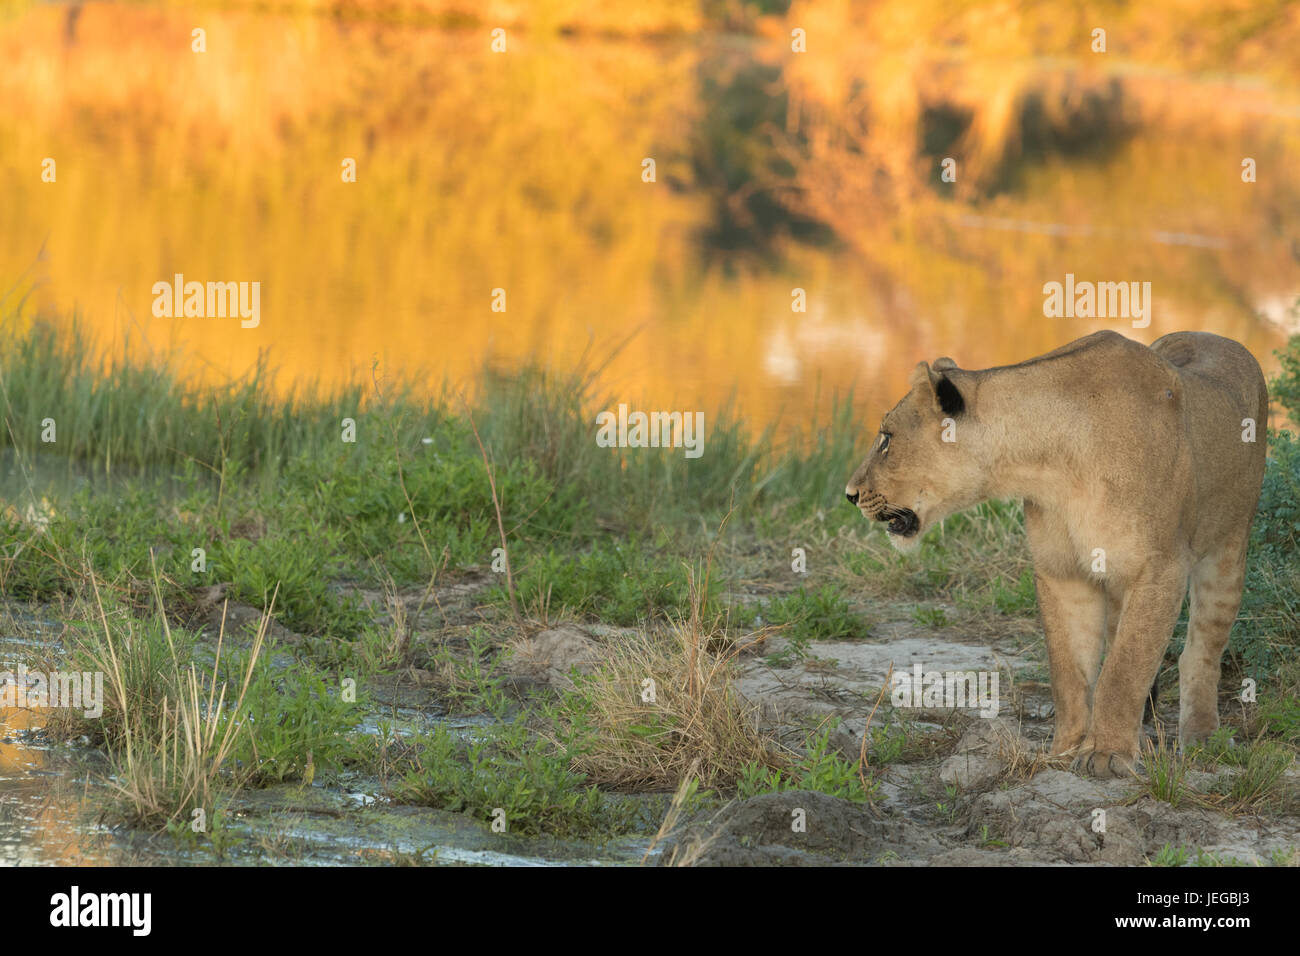 Subadult lion standing alongside water in early morning sunlight - Stock Image